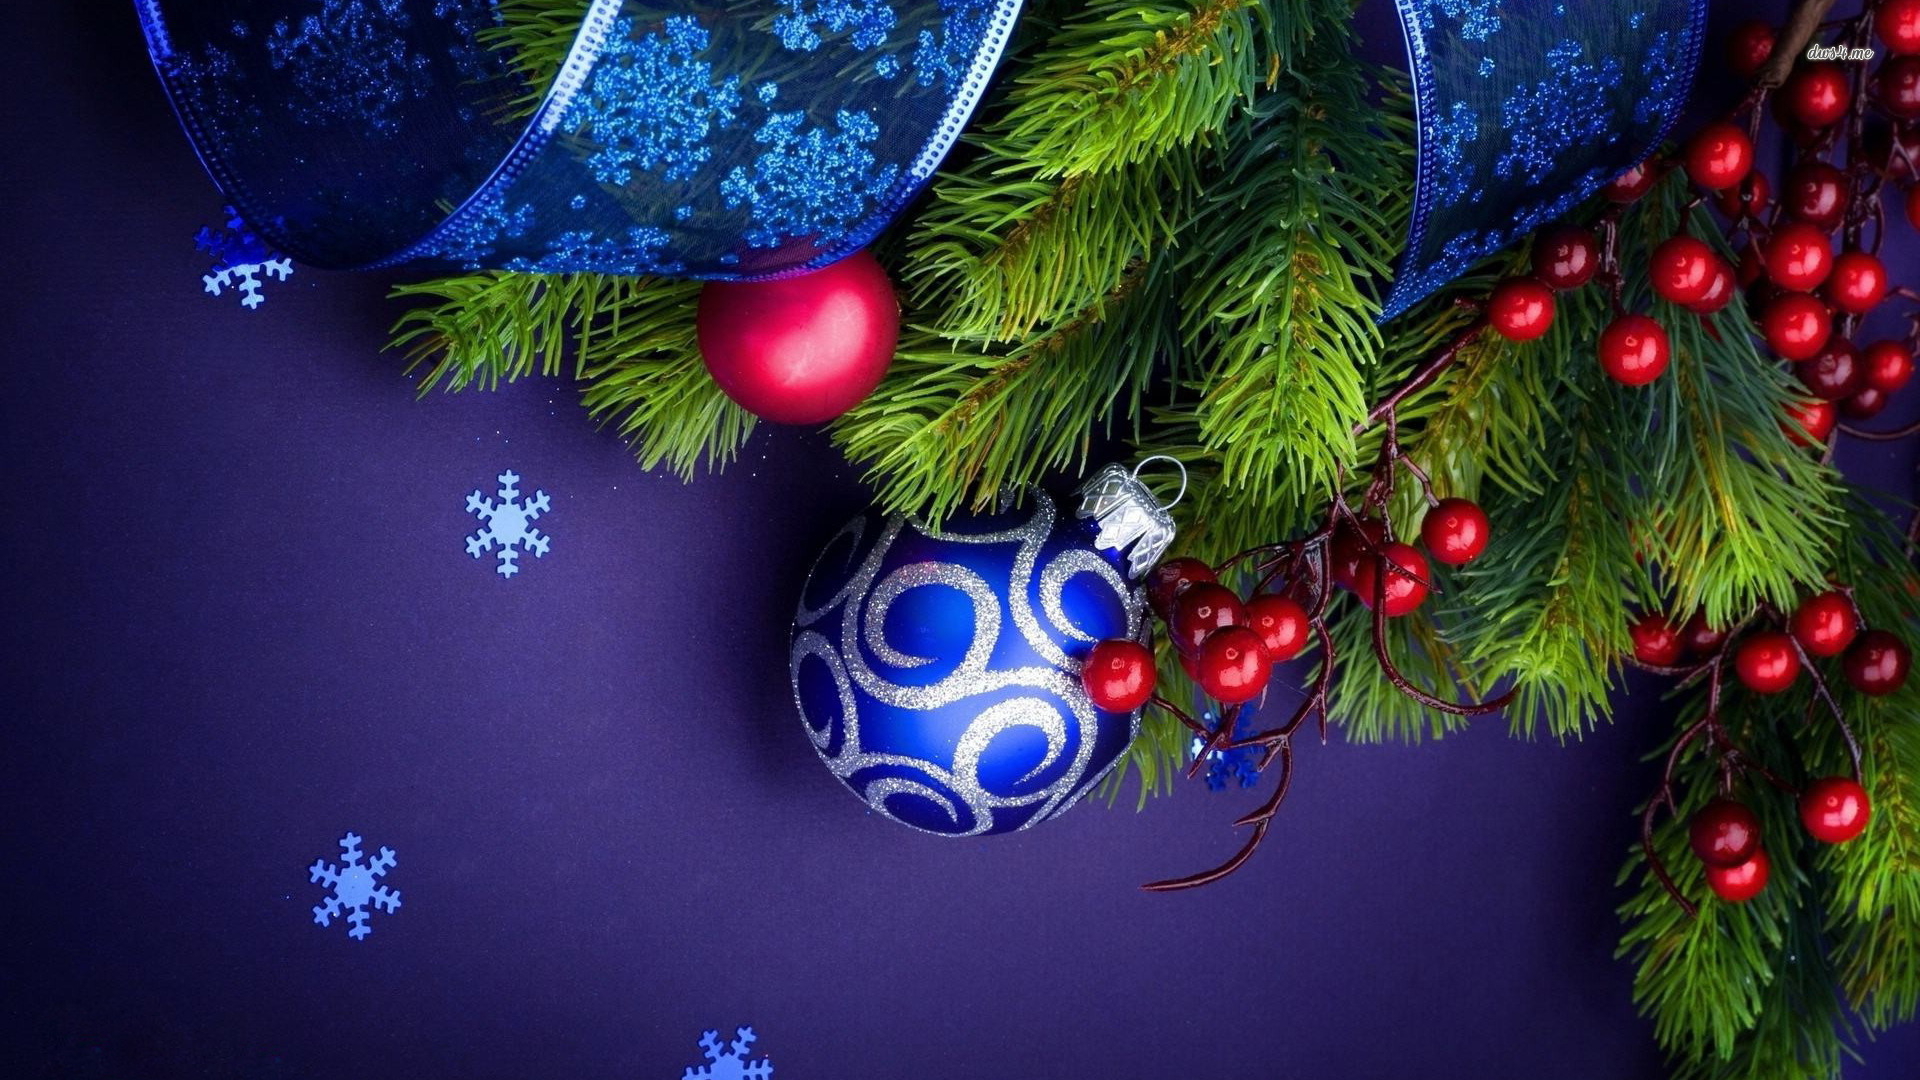 Christmas Wallpaper Blue